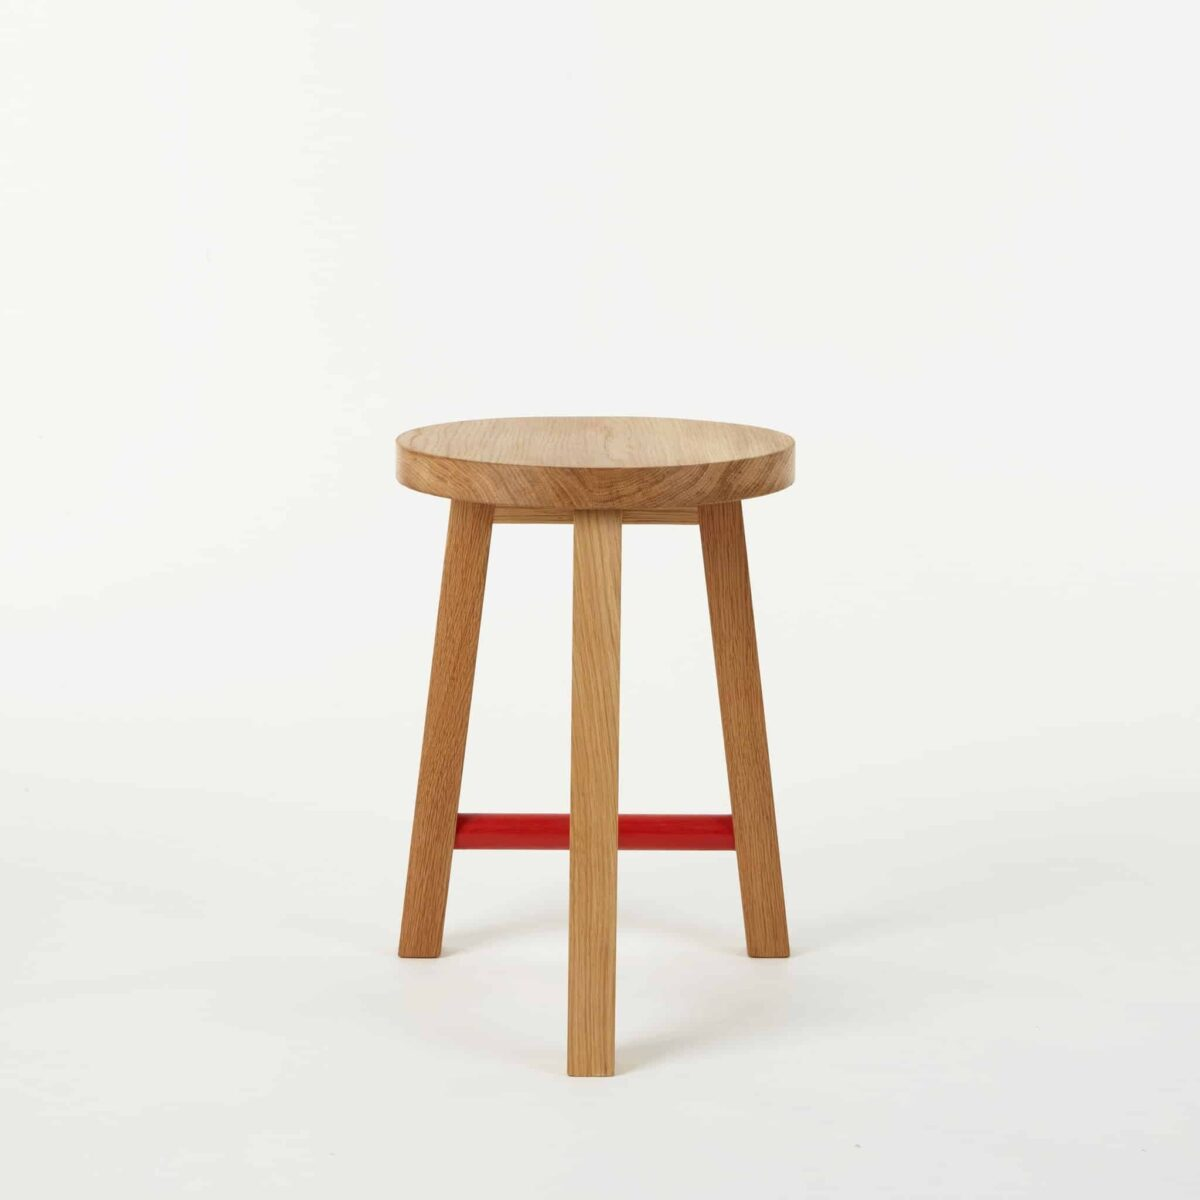 series-two-stool-round-ash-another-country-010